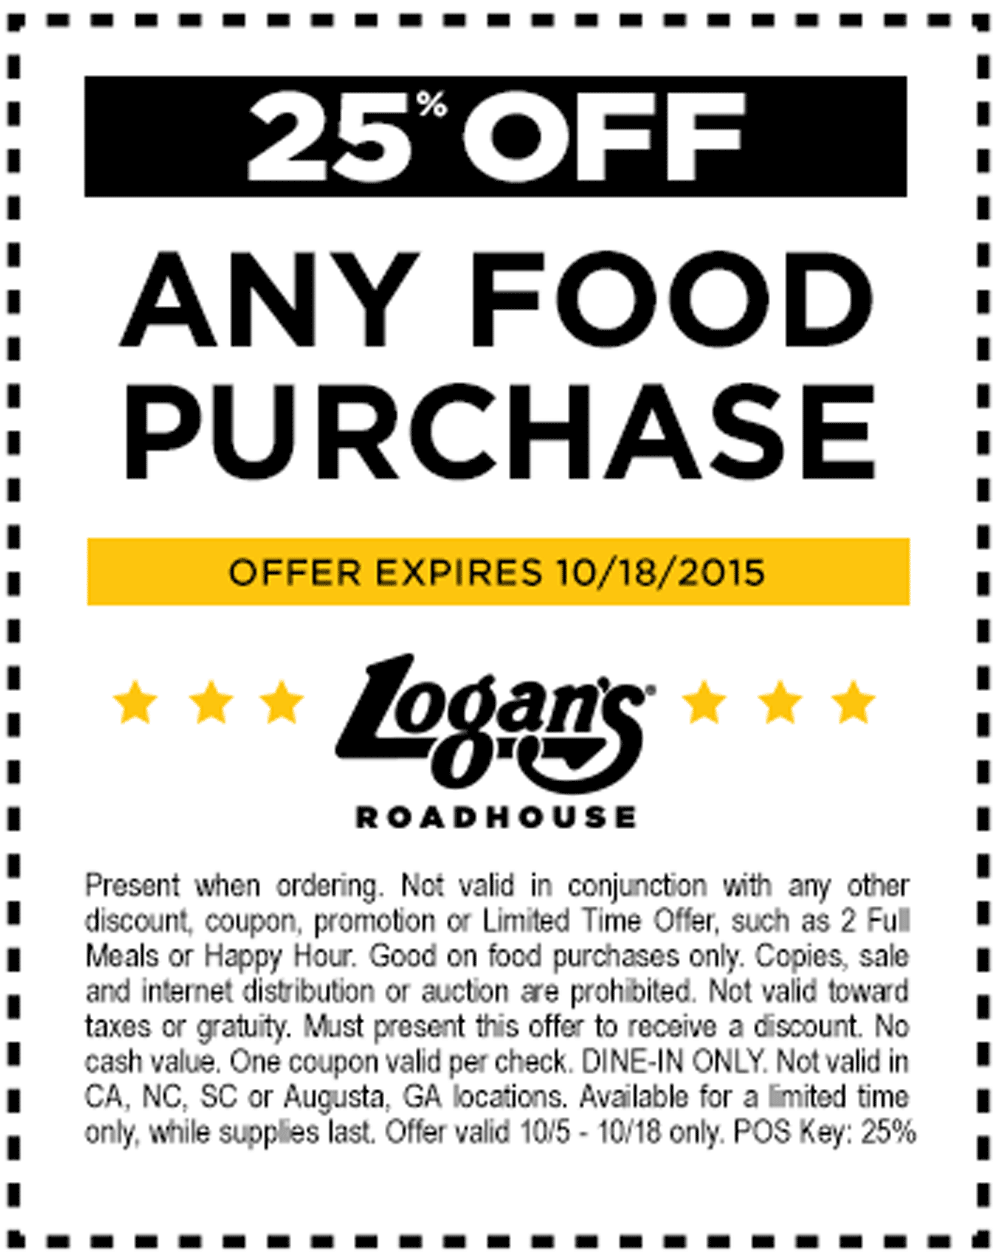 Logans Roadhouse Coupon August 2017 25% off at Logans Roadhouse